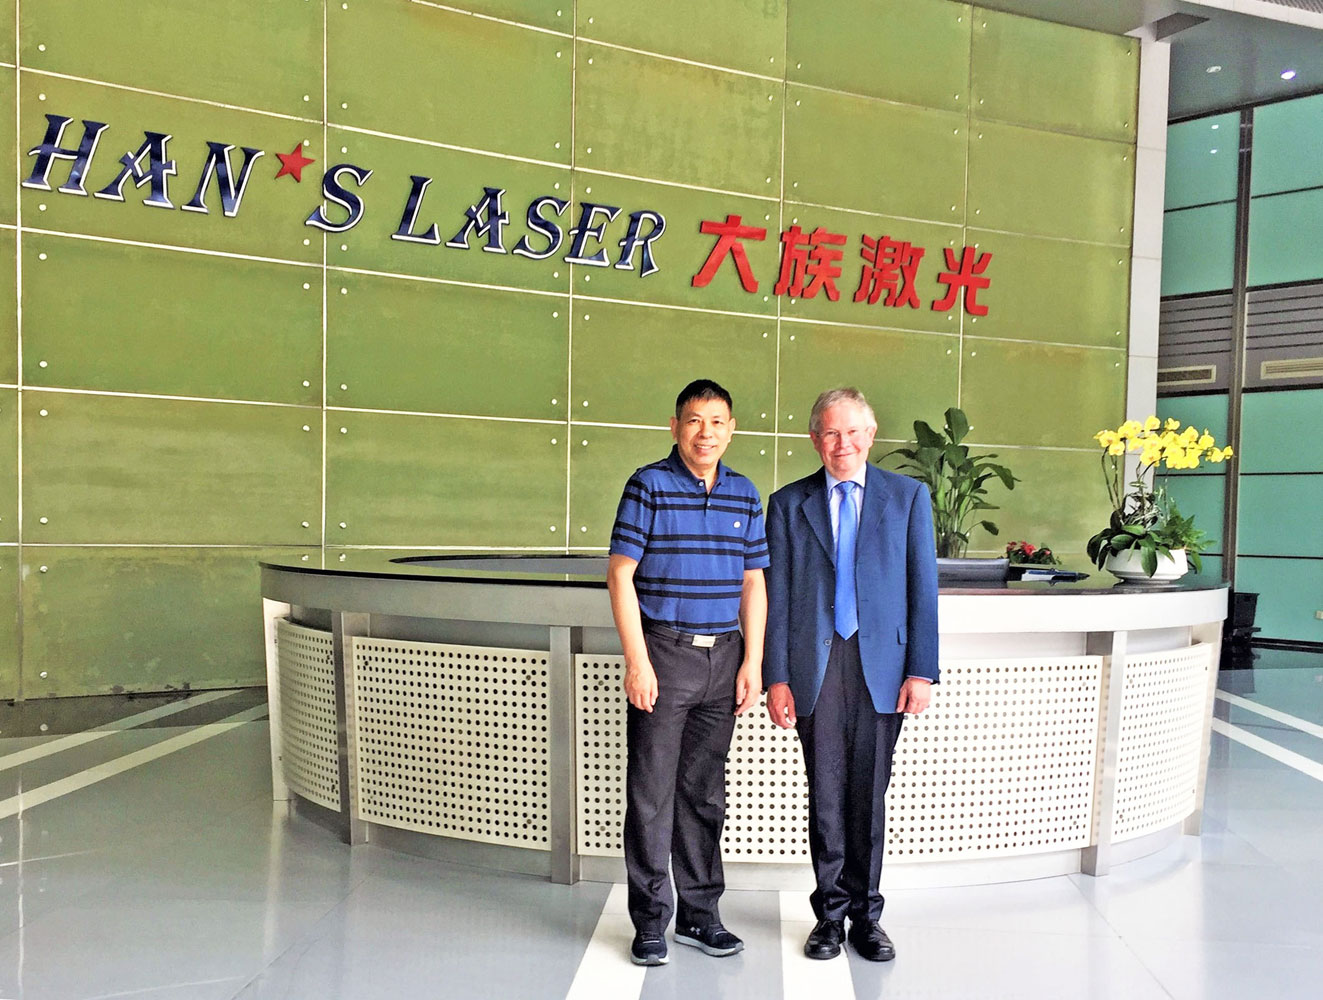 Besuch des internationalen Großunternehmens Han's Laser Technology Industry Group in Shenzhen: leitender Vizepräsident und technischer Direktor Professor Dr. Qitao Lue (links), Professor Dr. Walter Kullmann (rechts)  (Foto FHWS / Kullmann)